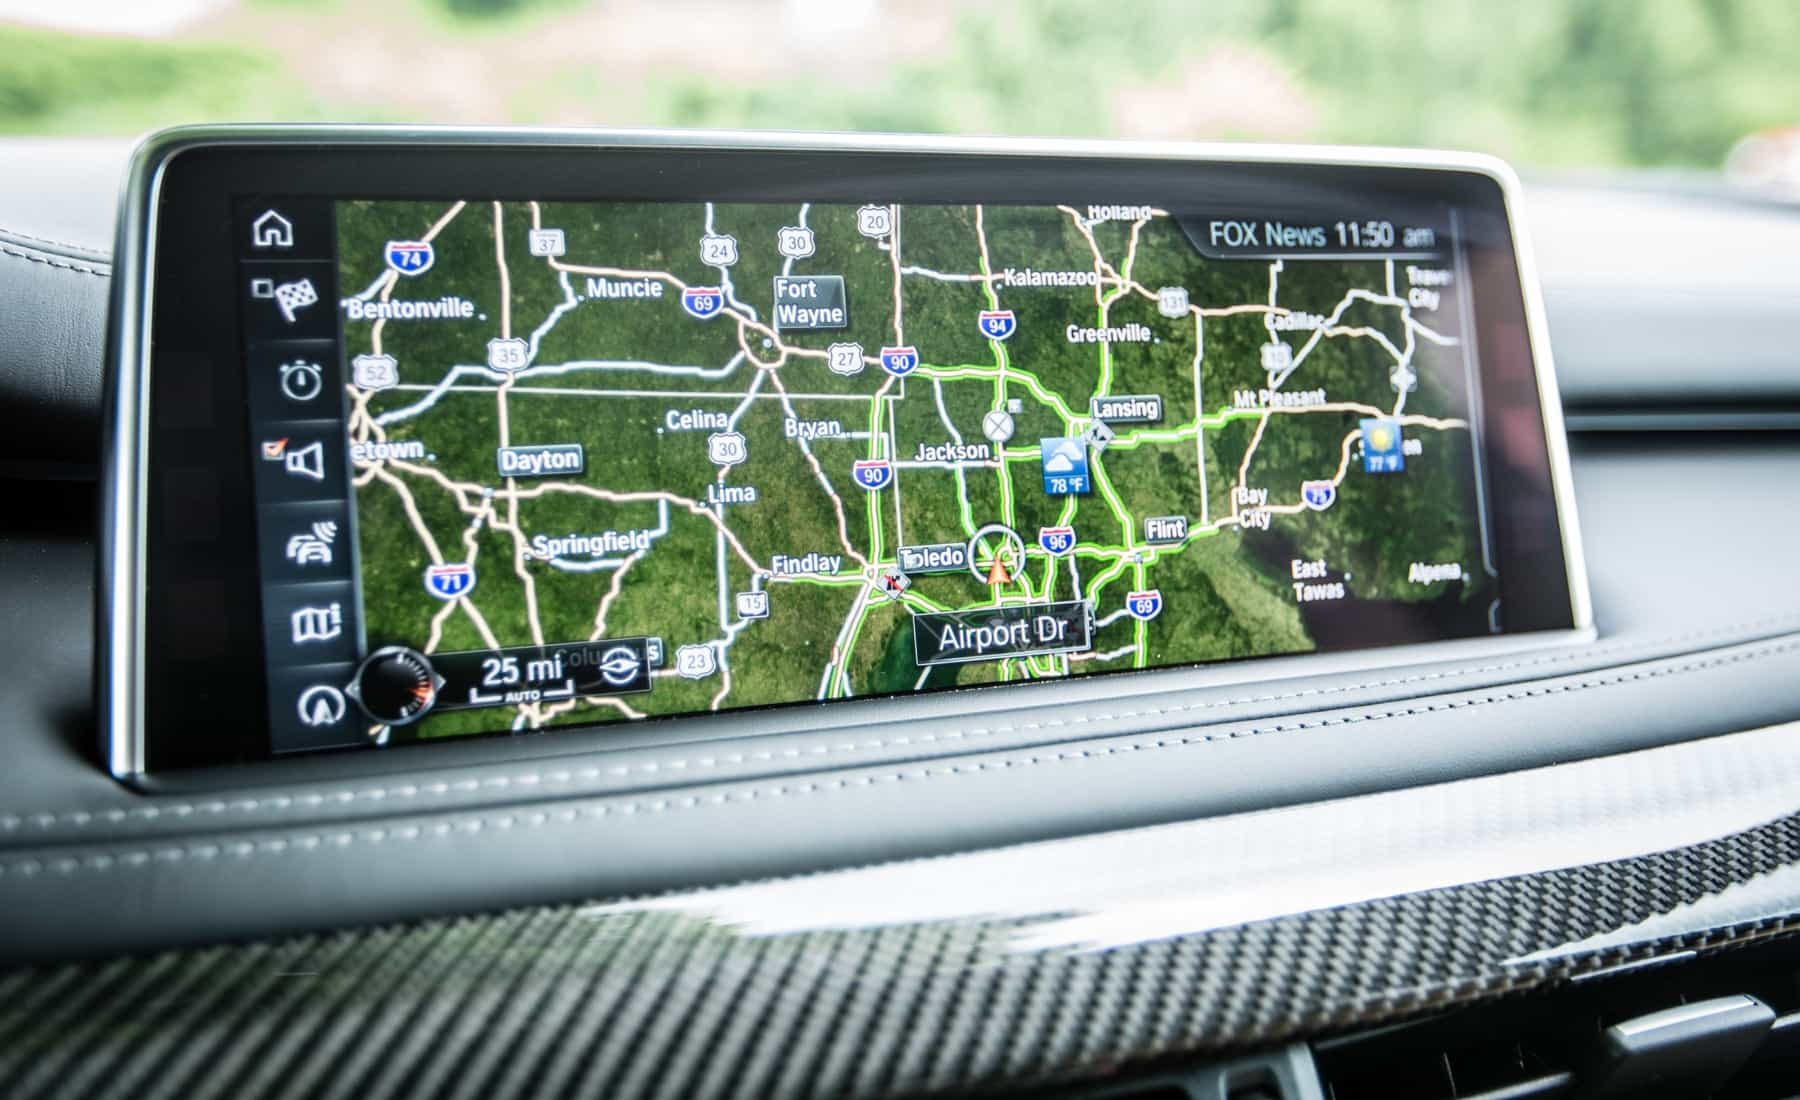 2017 BMW X5 M Interior View GPS Navigation (Photo 23 of 35)